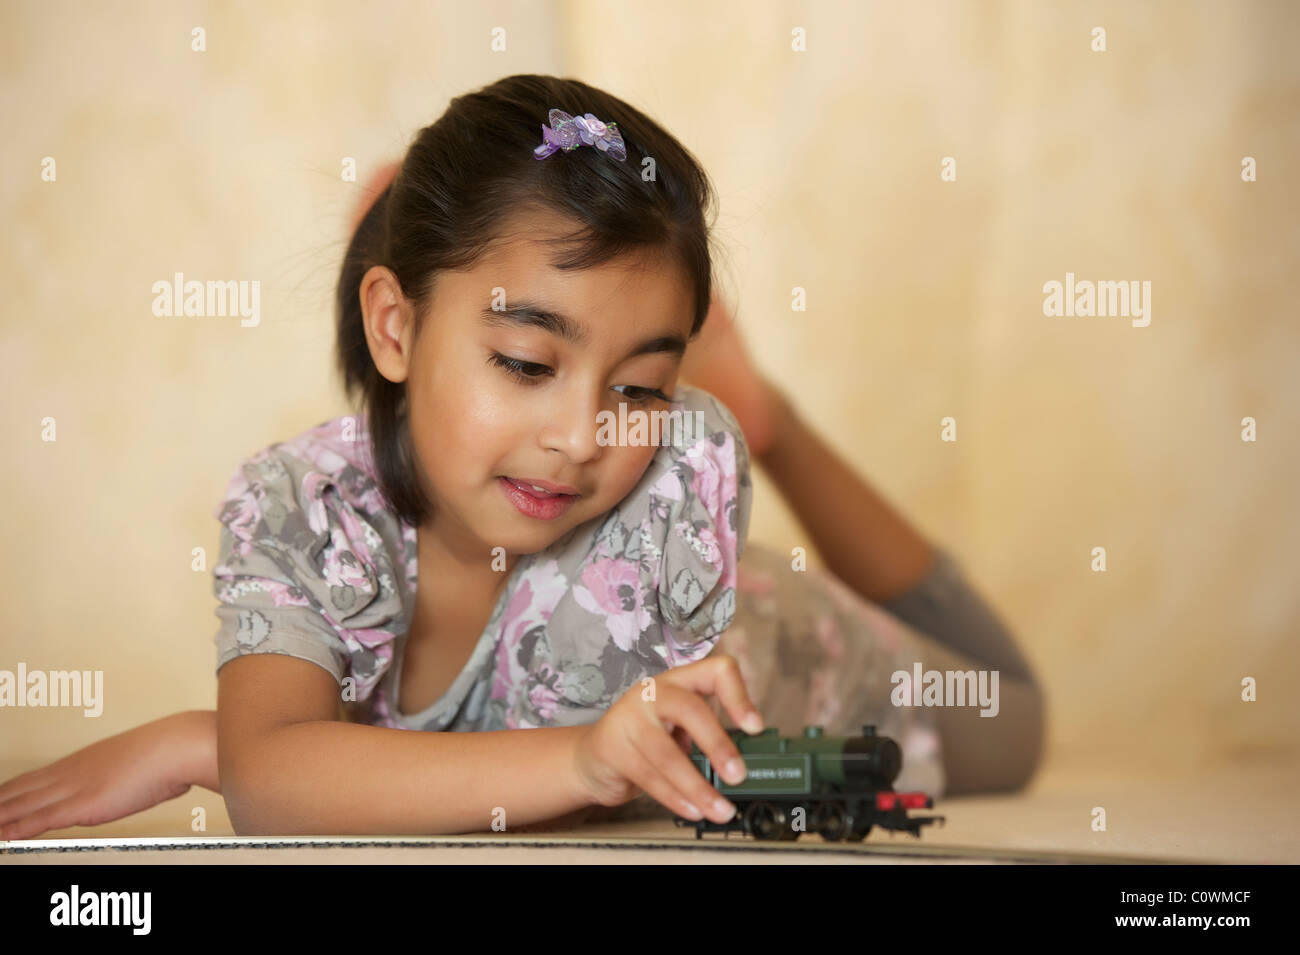 A young girl playing with her toy train set Stock Photo